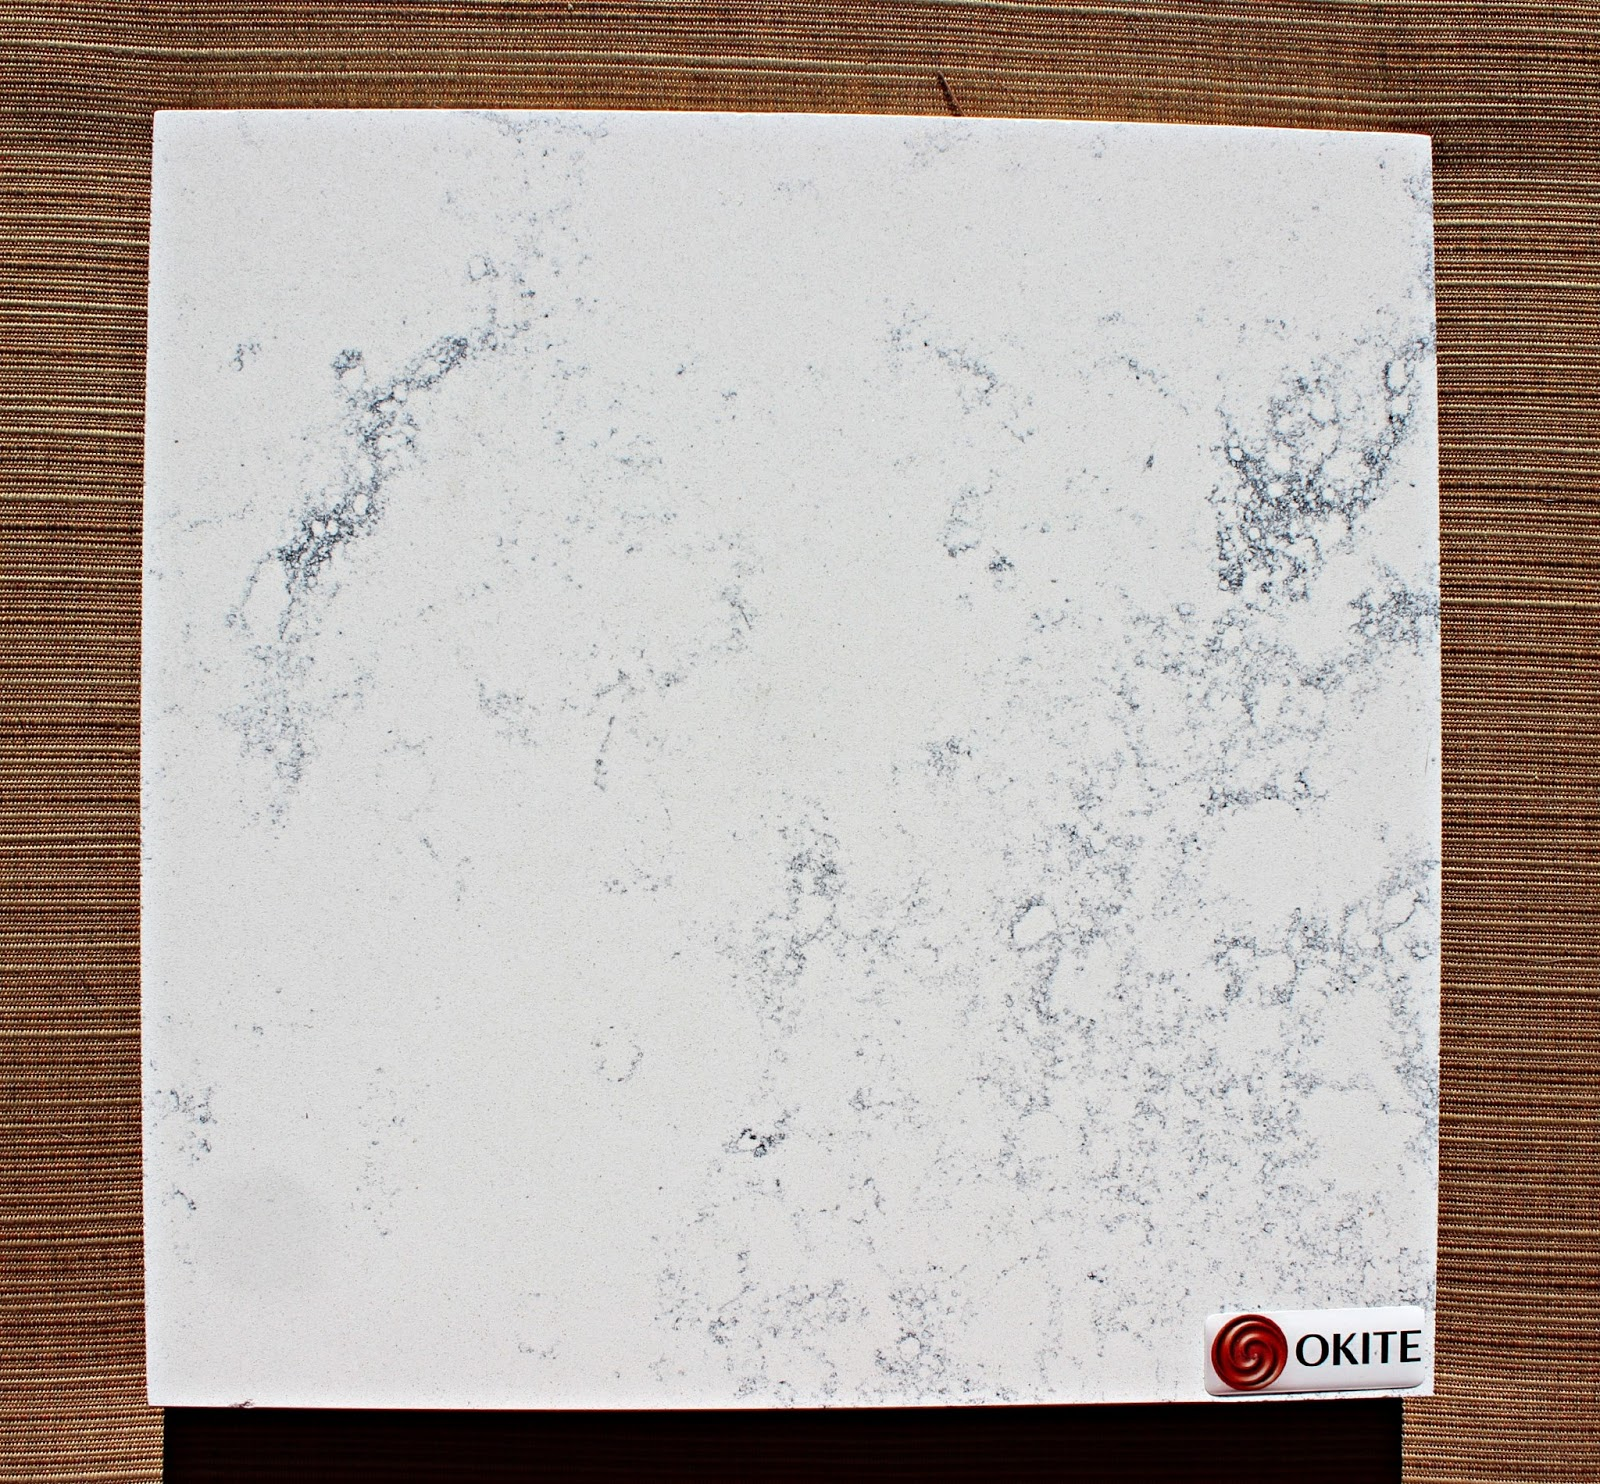 Okite Countertops Price Zodiaq Quartz Price Per Square Foot Shapeyourminds